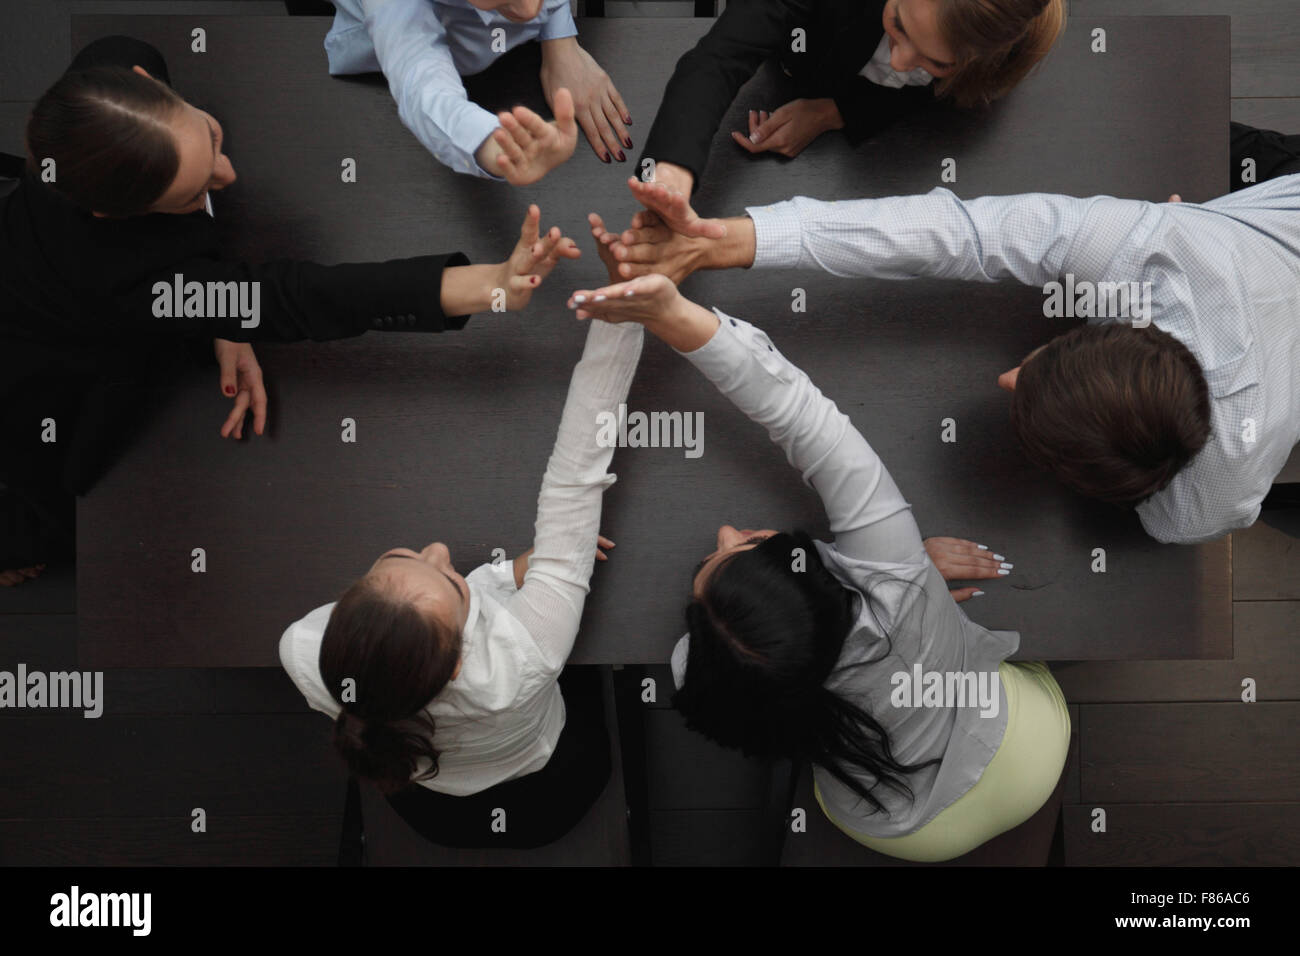 People with their hands together. Business team work concept - Stock Image